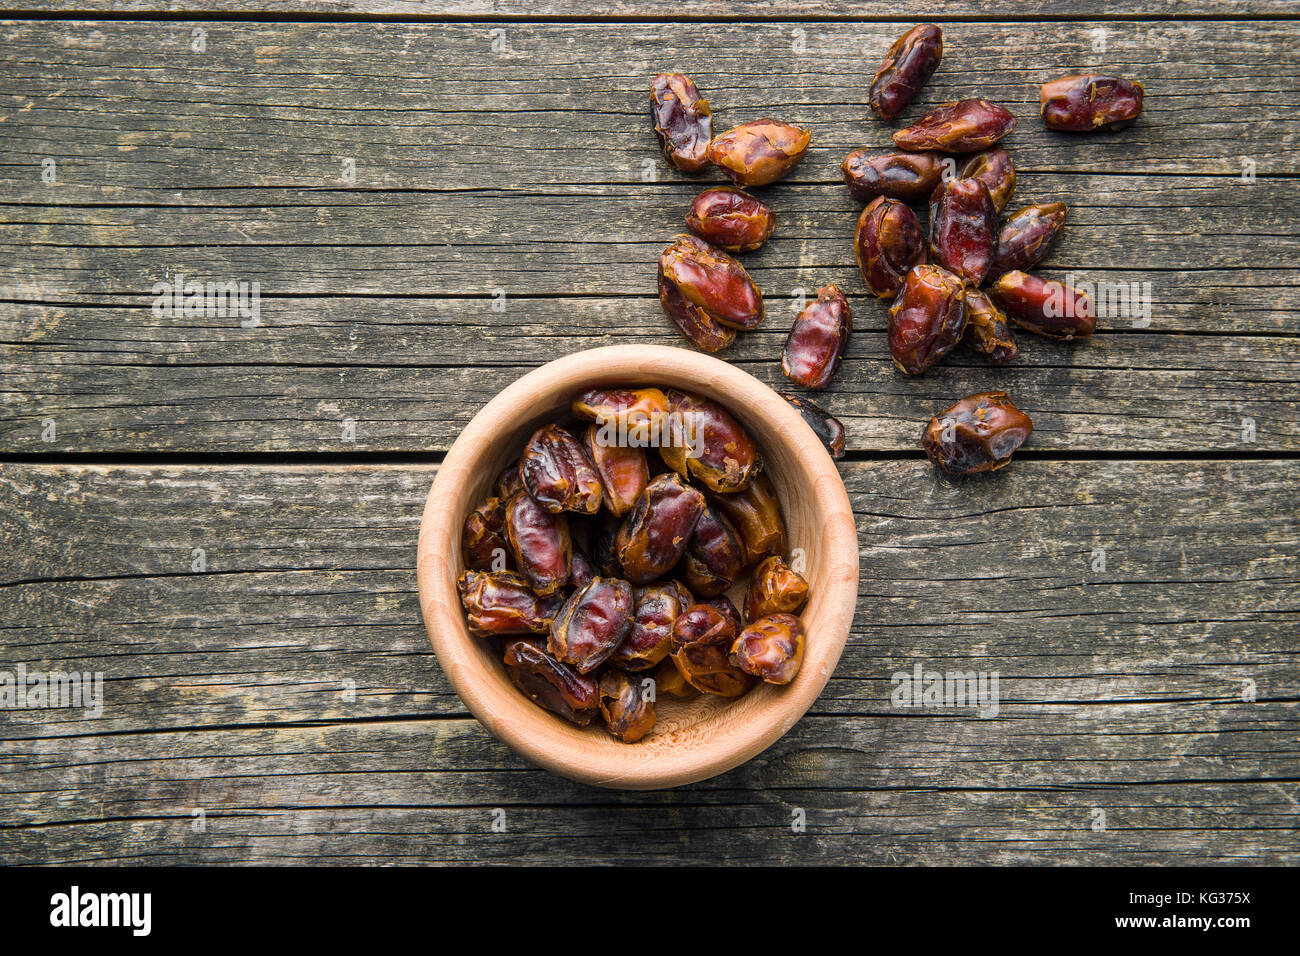 Sweet dates without stones in bowl. - Stock Image